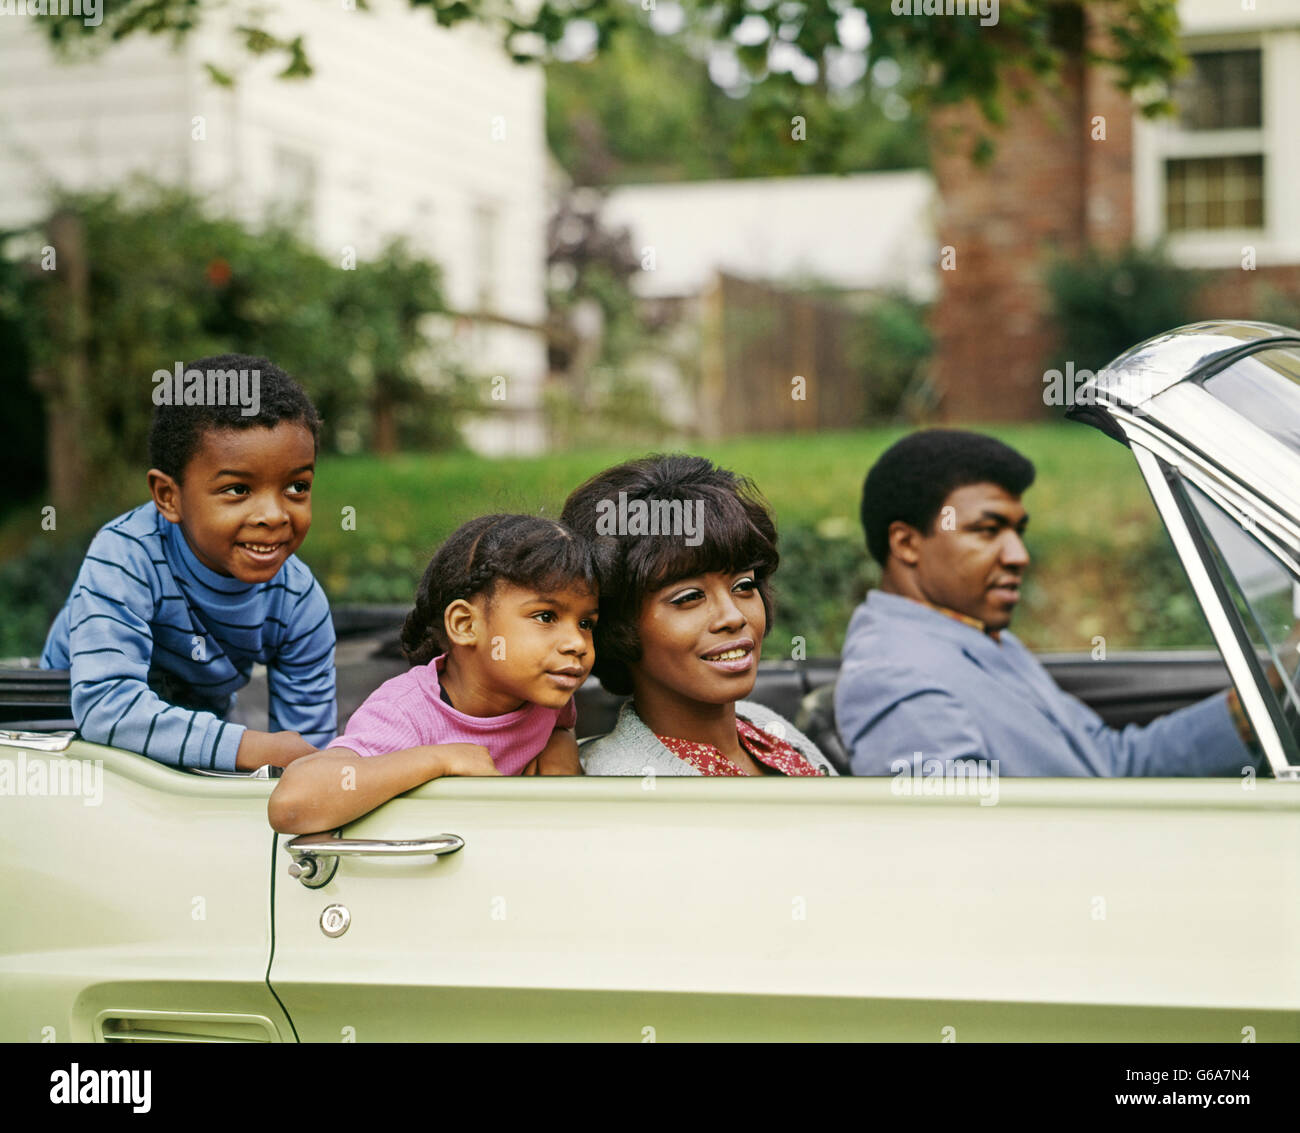 1970s AFRICAN AMERICAN FAMILY OF FOUR RIDING IN CONVERTIBLE AUTOMOBILE FATHER MOTHER SON DAUGHTER - Stock Image